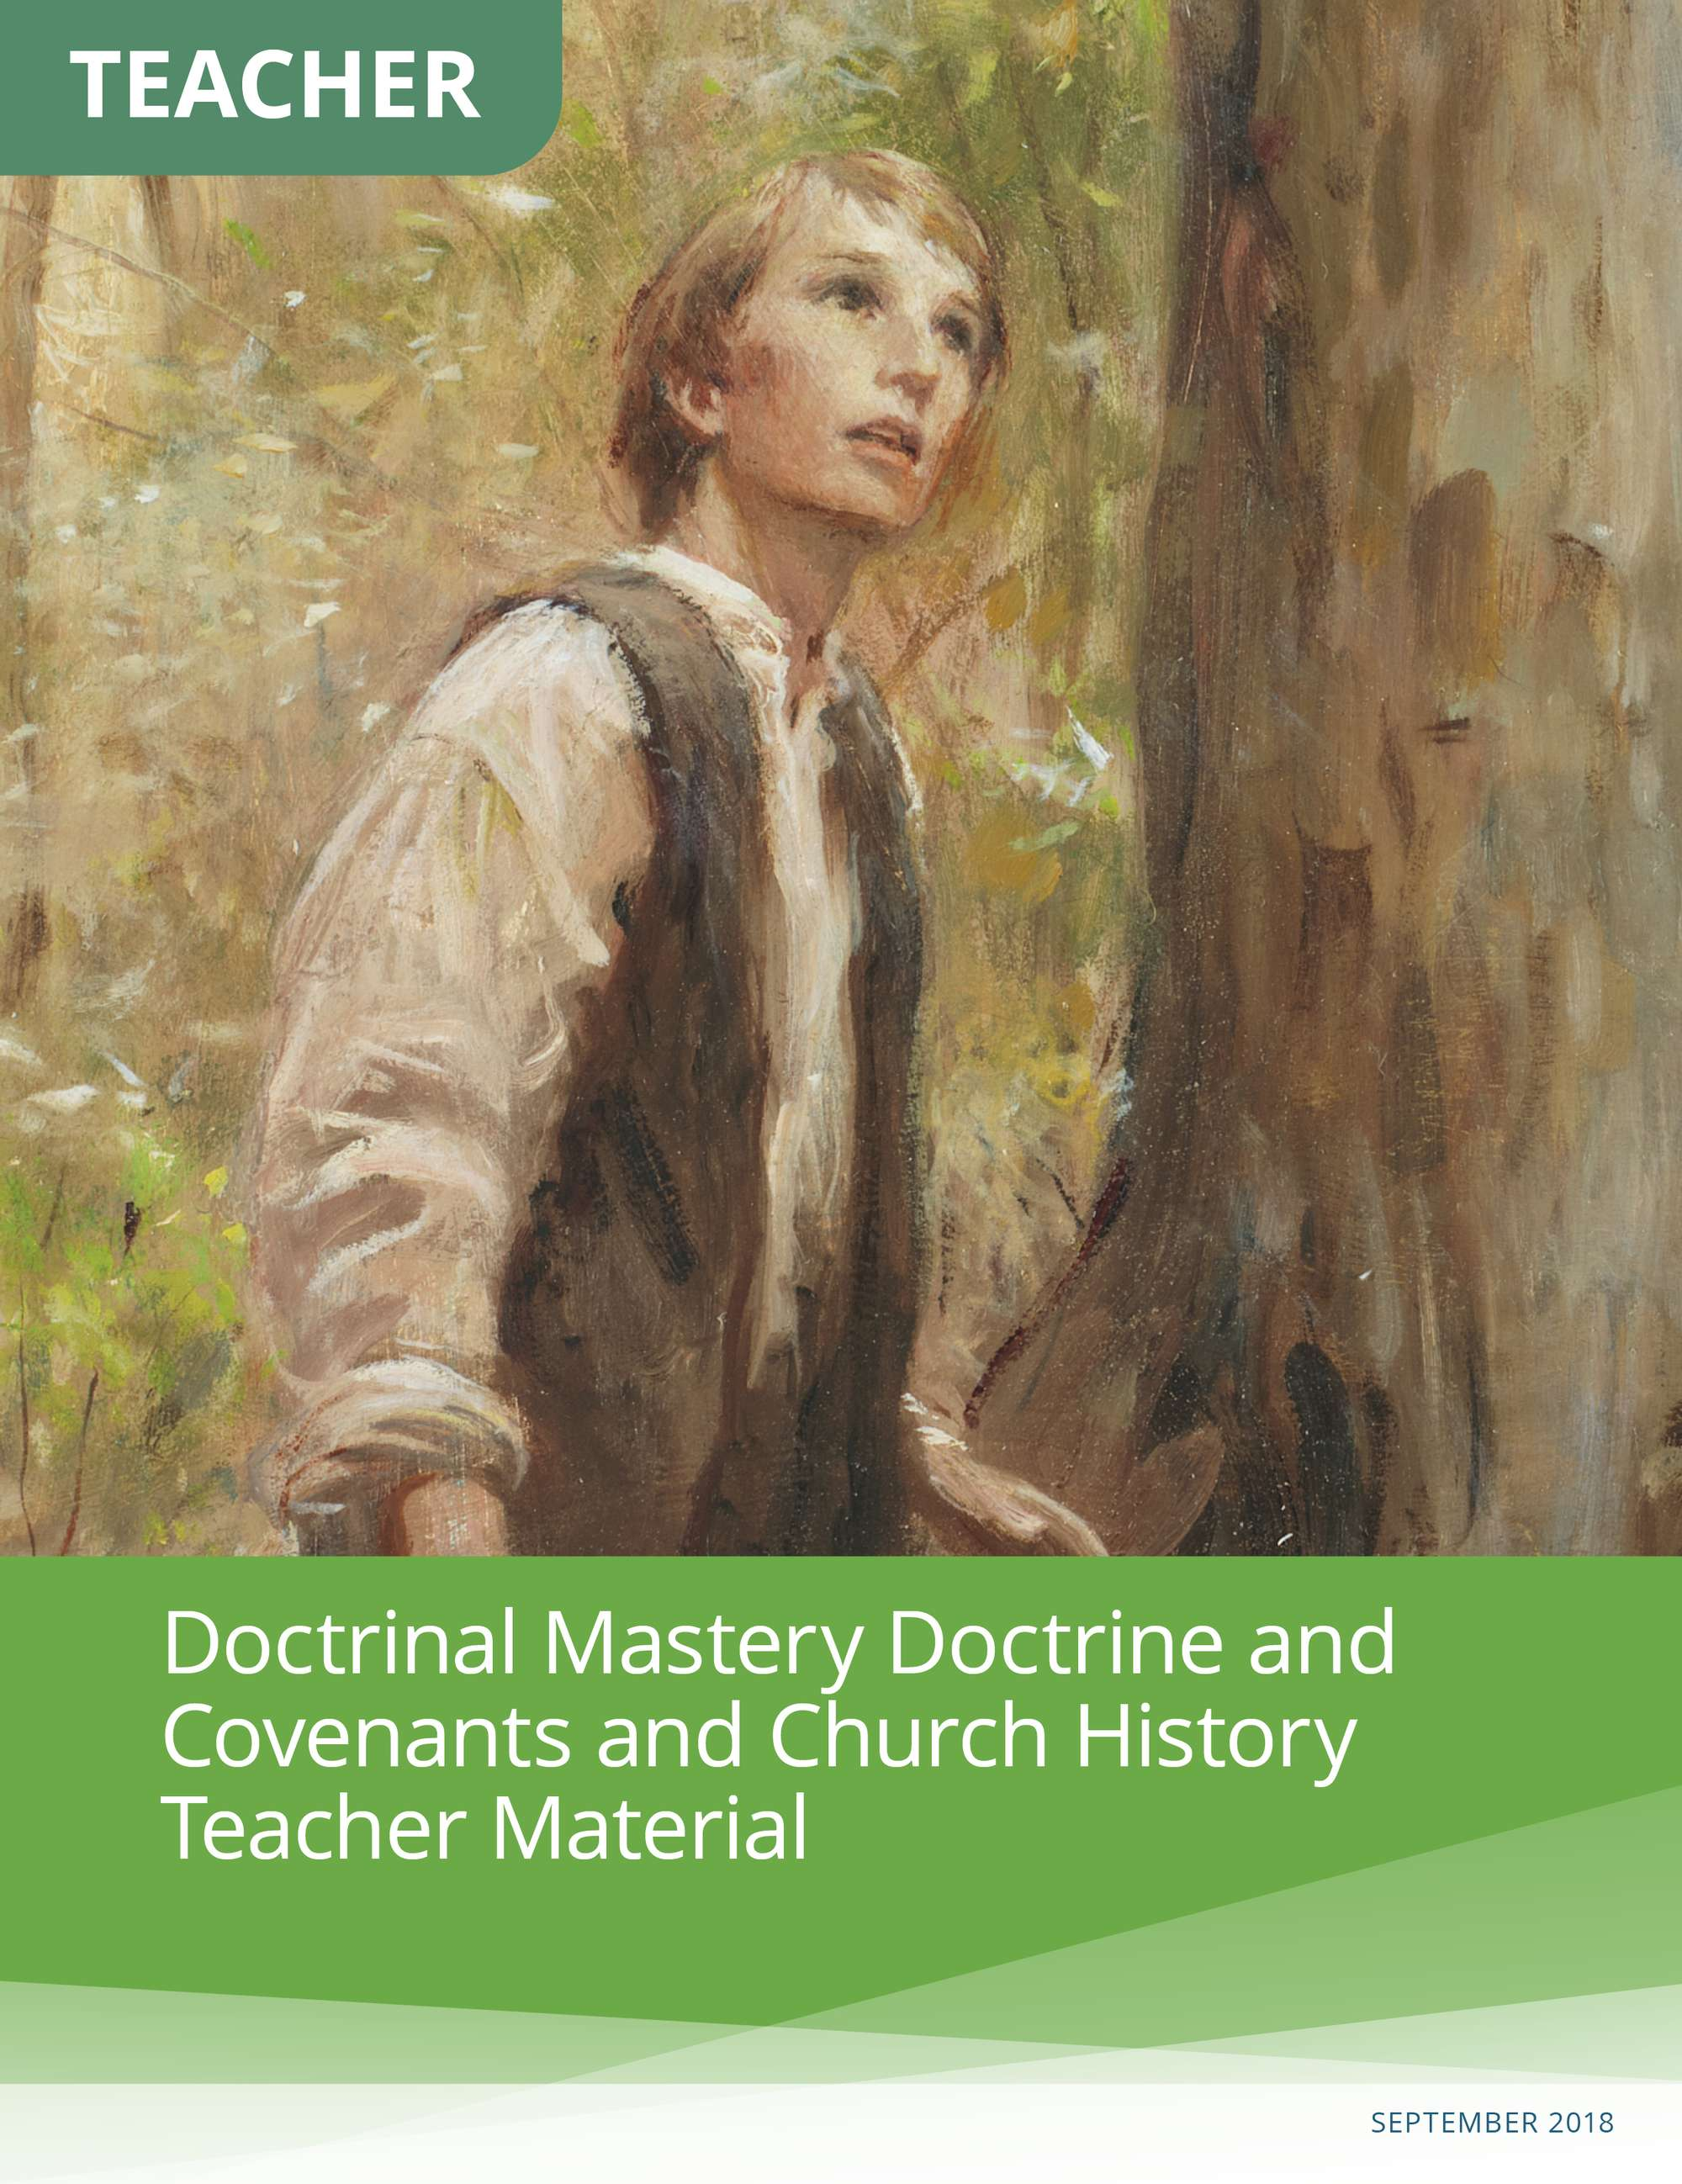 Doctrinal Mastery Doctrine and Covenants and Church History Teacher Material